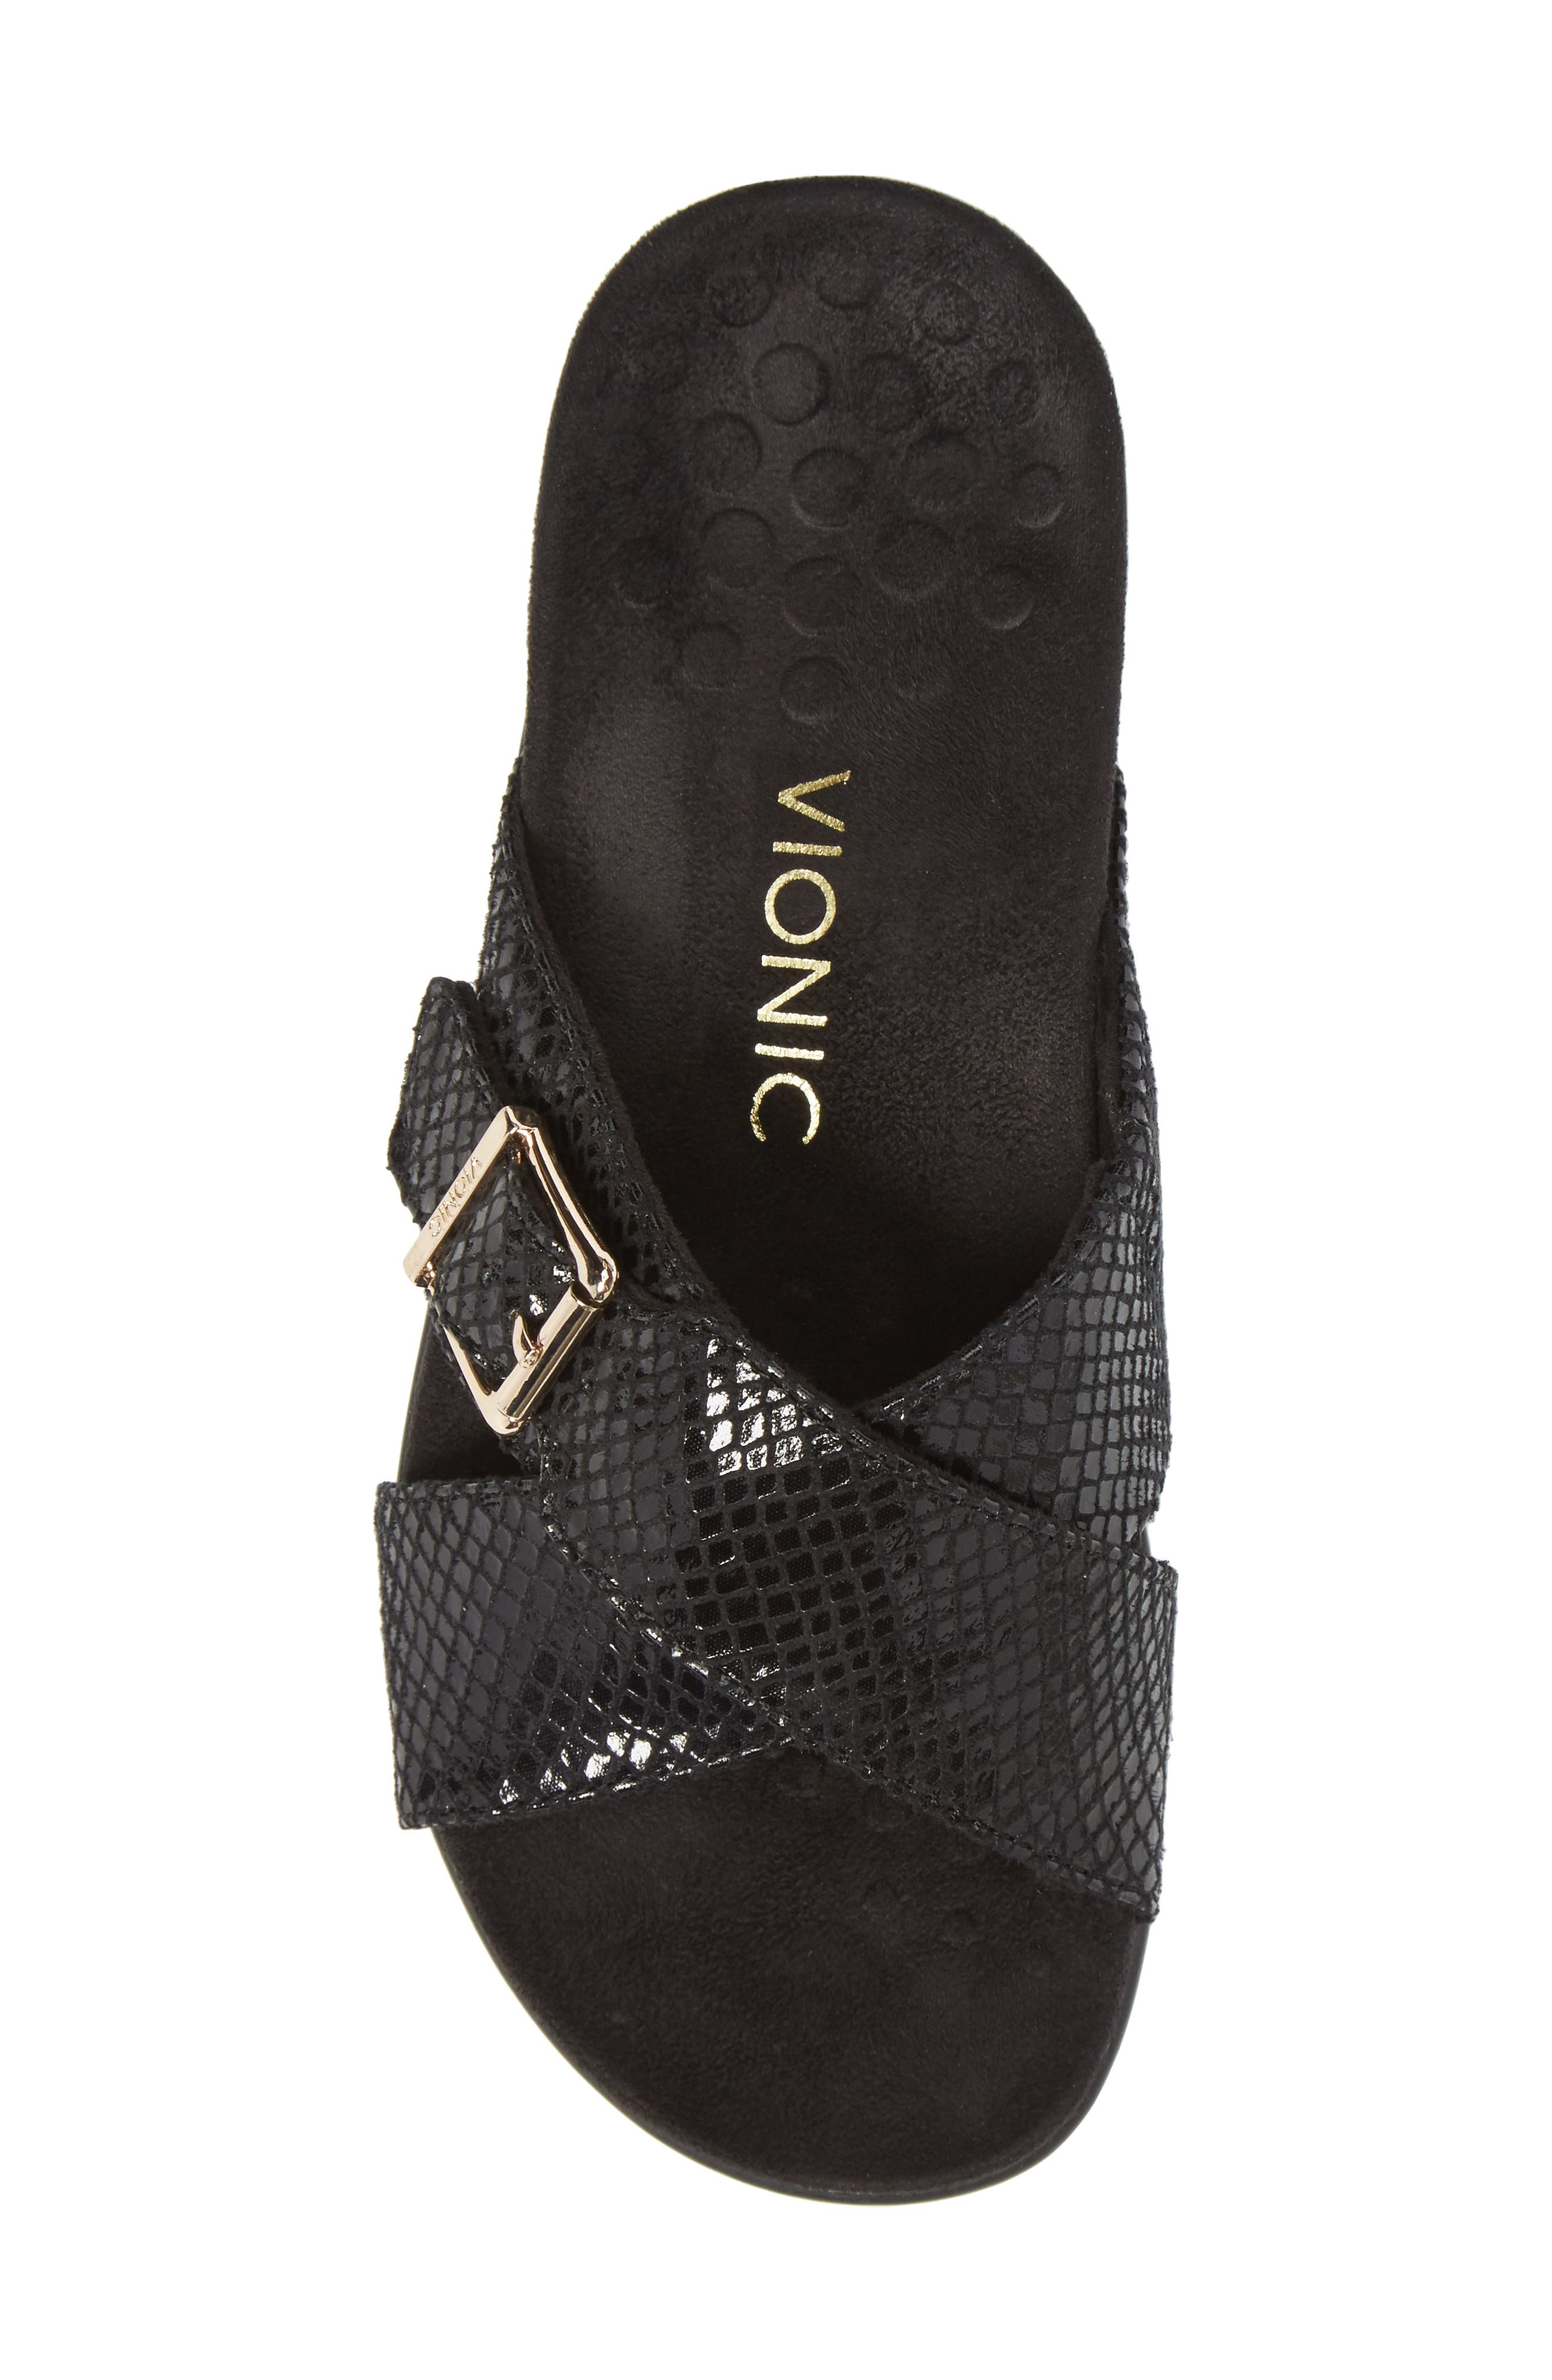 Dorie Cross Strap Slide Sandal,                             Alternate thumbnail 5, color,                             BLACK SNAKE FAUX LEATHER